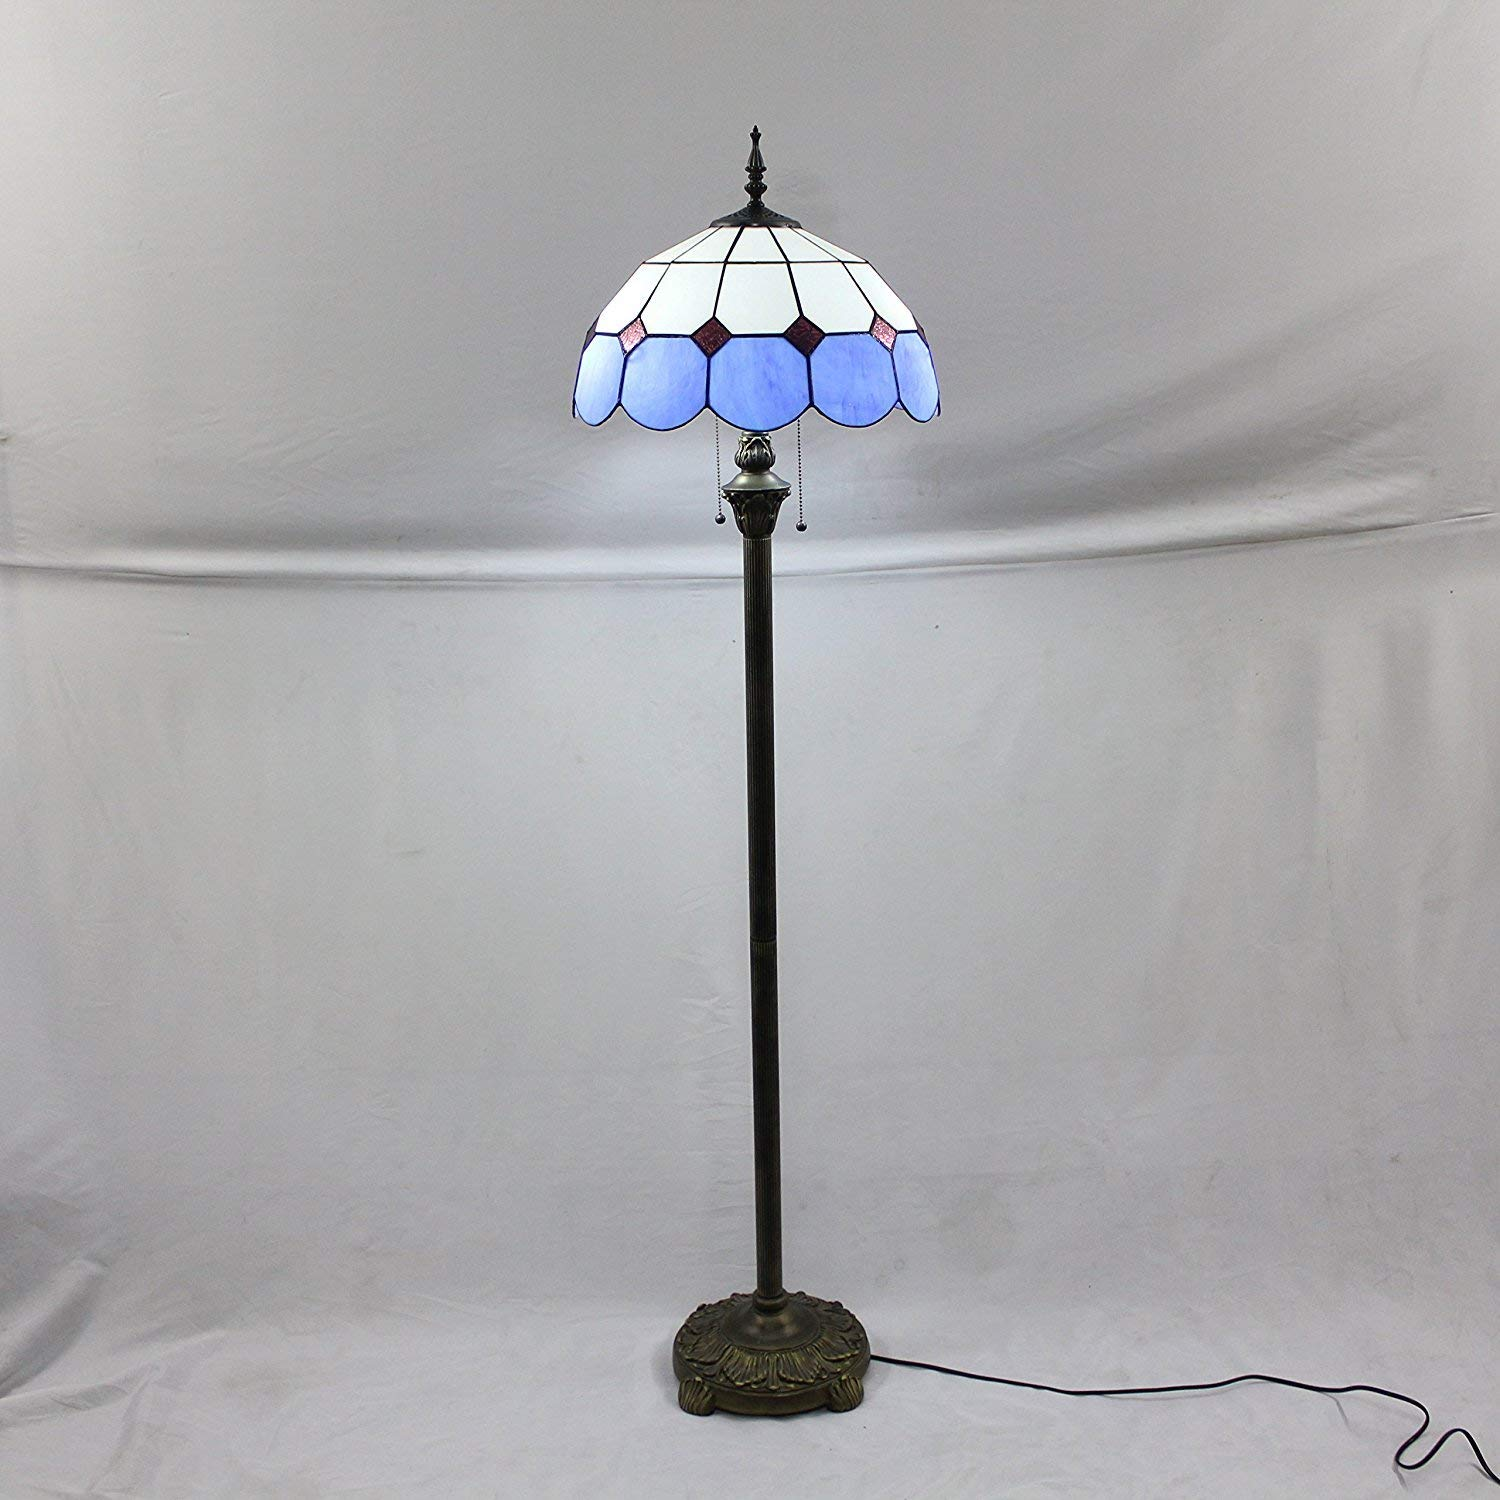 NN 16-Inch Mediterranean European Pastoral Style Elegant Luxury Creative Handmade Stained Glass Floor Lamp - Blue